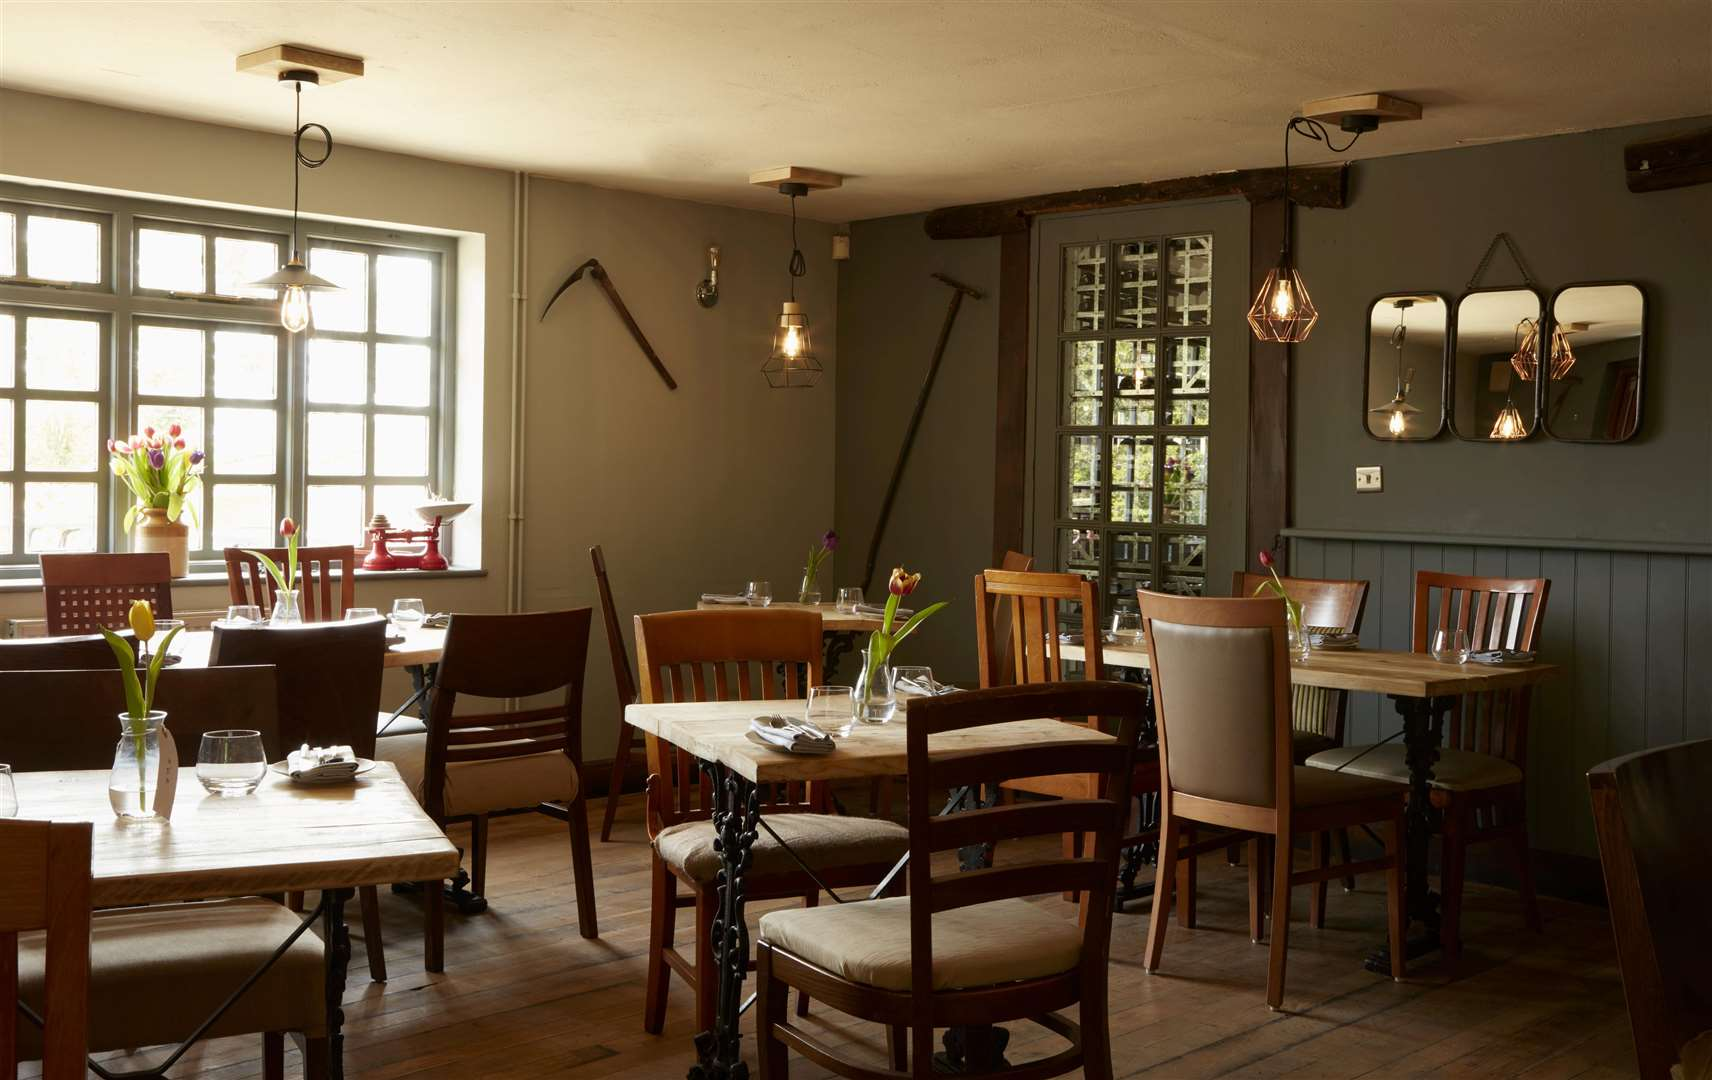 The Small Holding in Goudhurst. Picture: SWNS